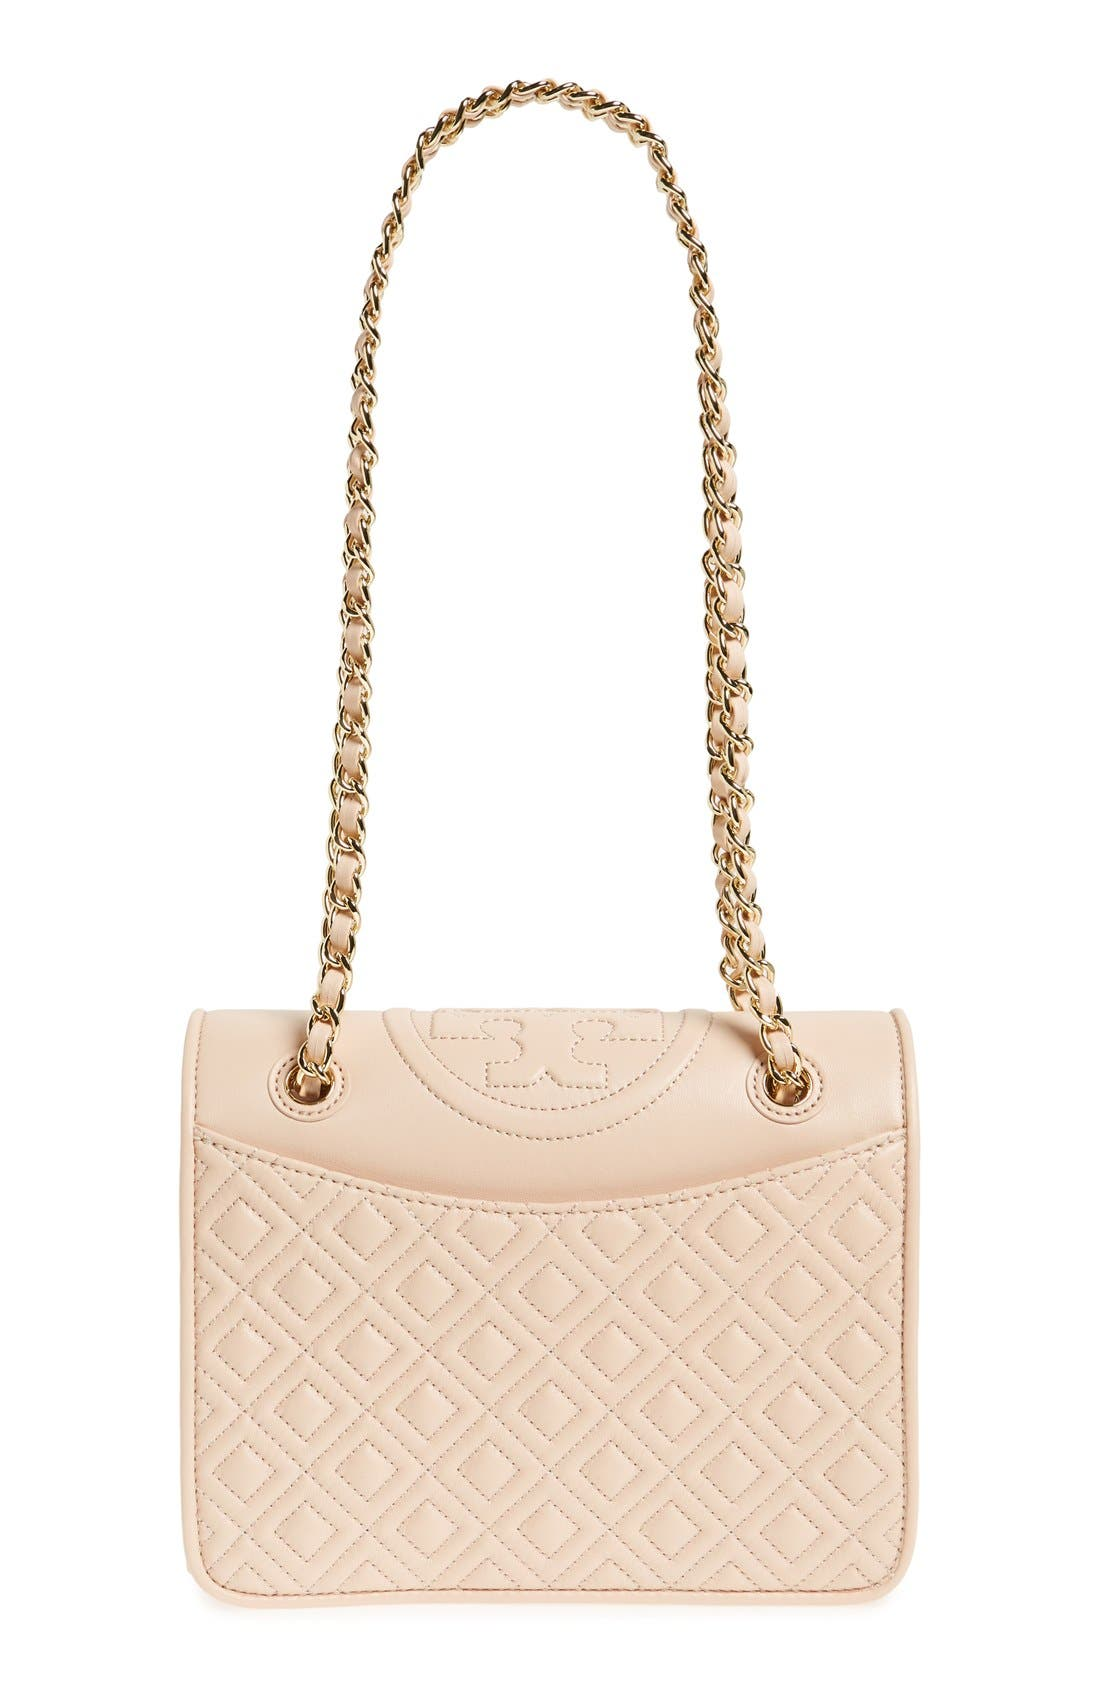 Alternate Image 1 Selected - Tory Burch 'Medium Fleming' Leather Shoulder Bag